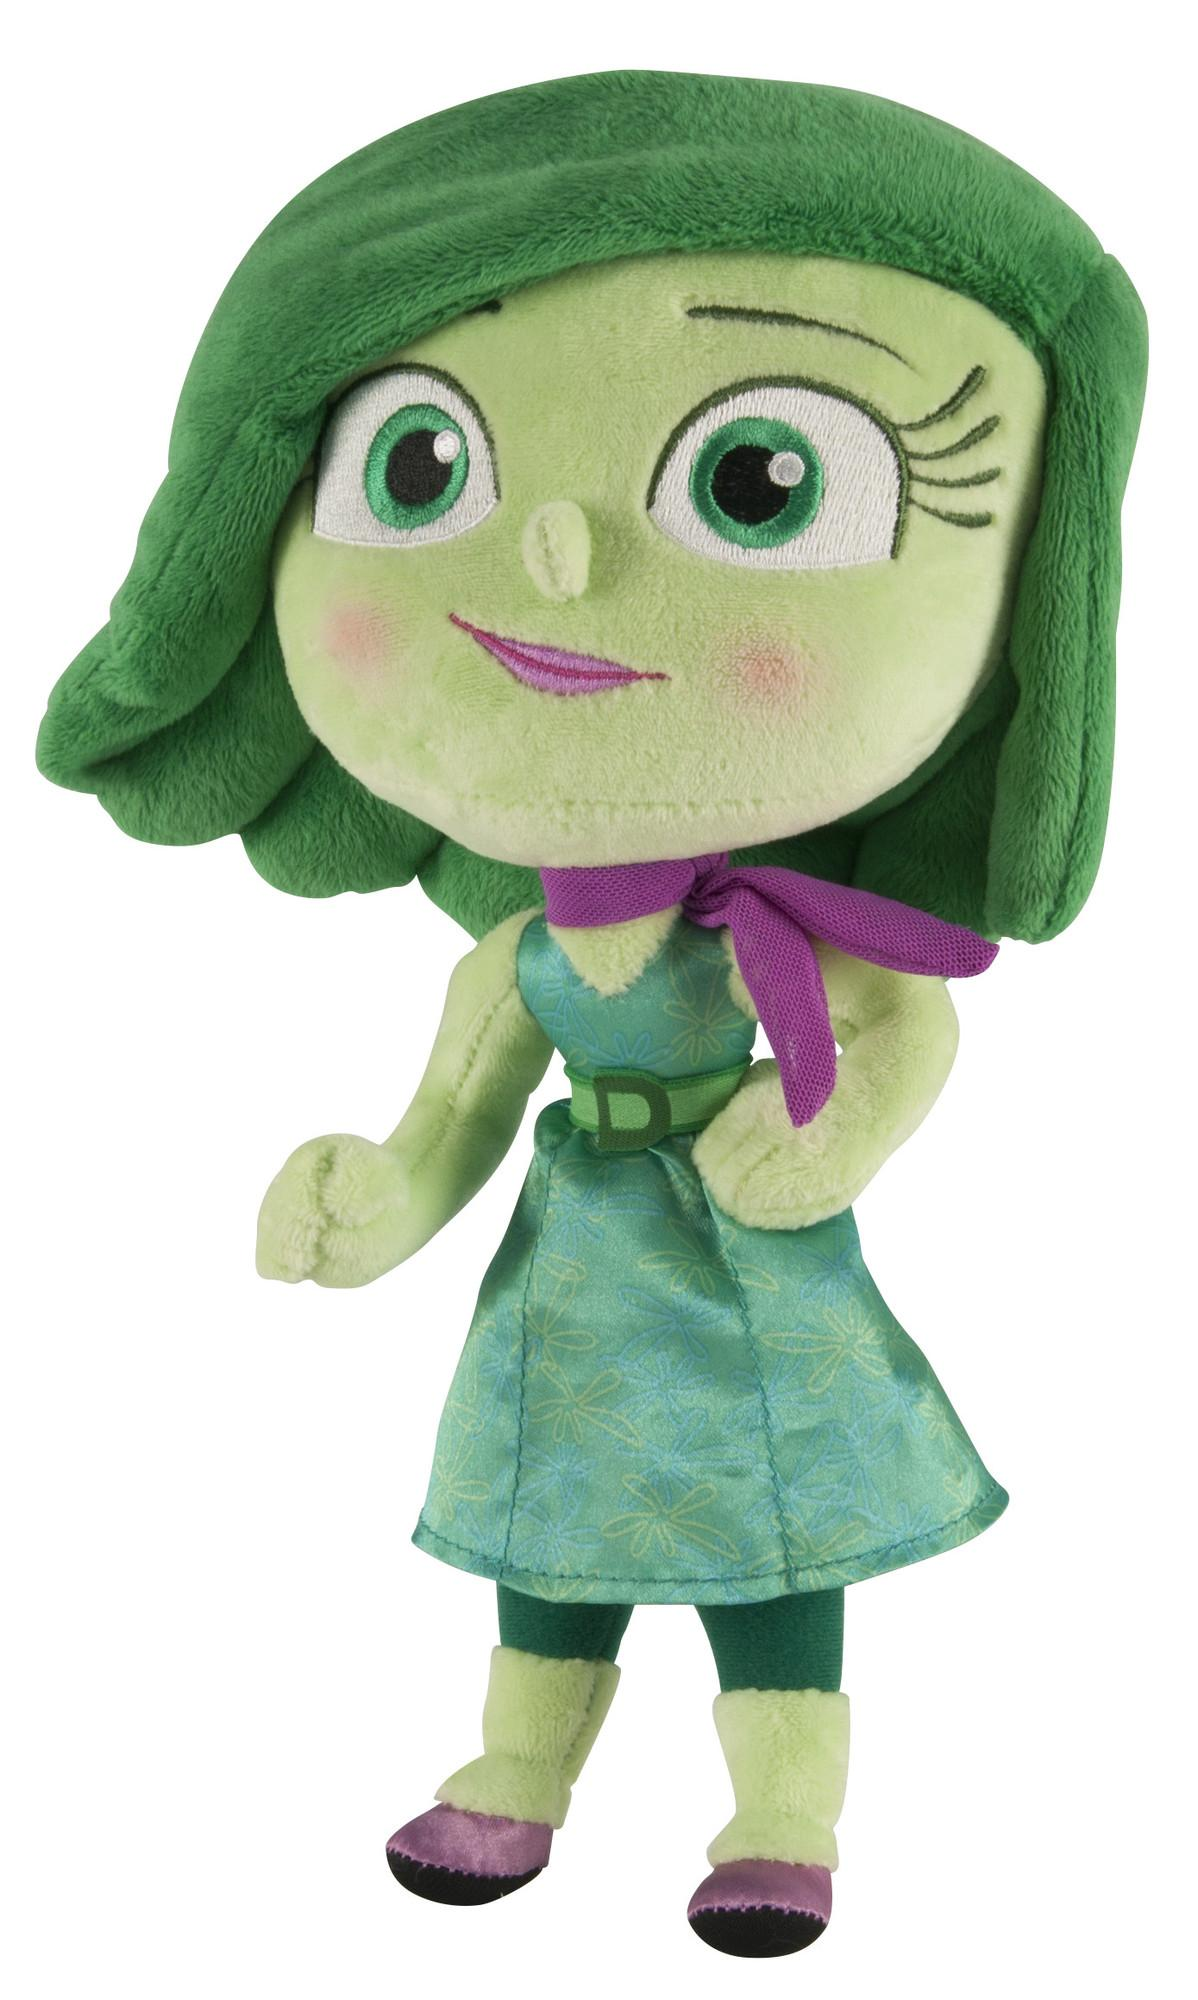 TOMY Inside Out Talking Plush, Disgust                                                                                                                                                                                                                Feedback